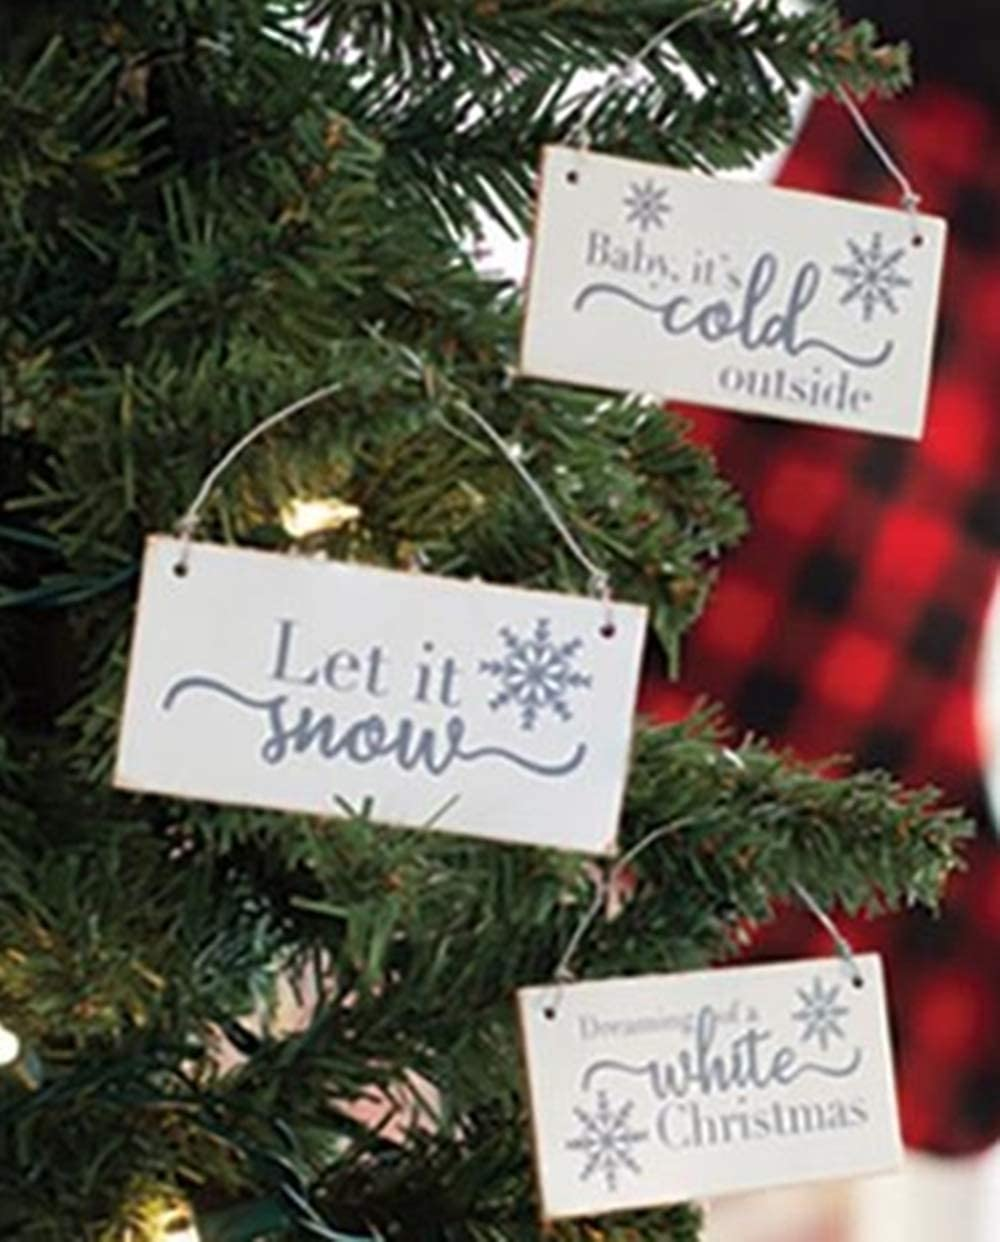 HAPPY DEALS ~ Set of 3 | White Wooden Ornaments | Let it Snow, Baby It's Cold Outside, Dreaming of a White Christmas | Farmhouse Country Decor Ornaments 3.5 x 1.75 inch